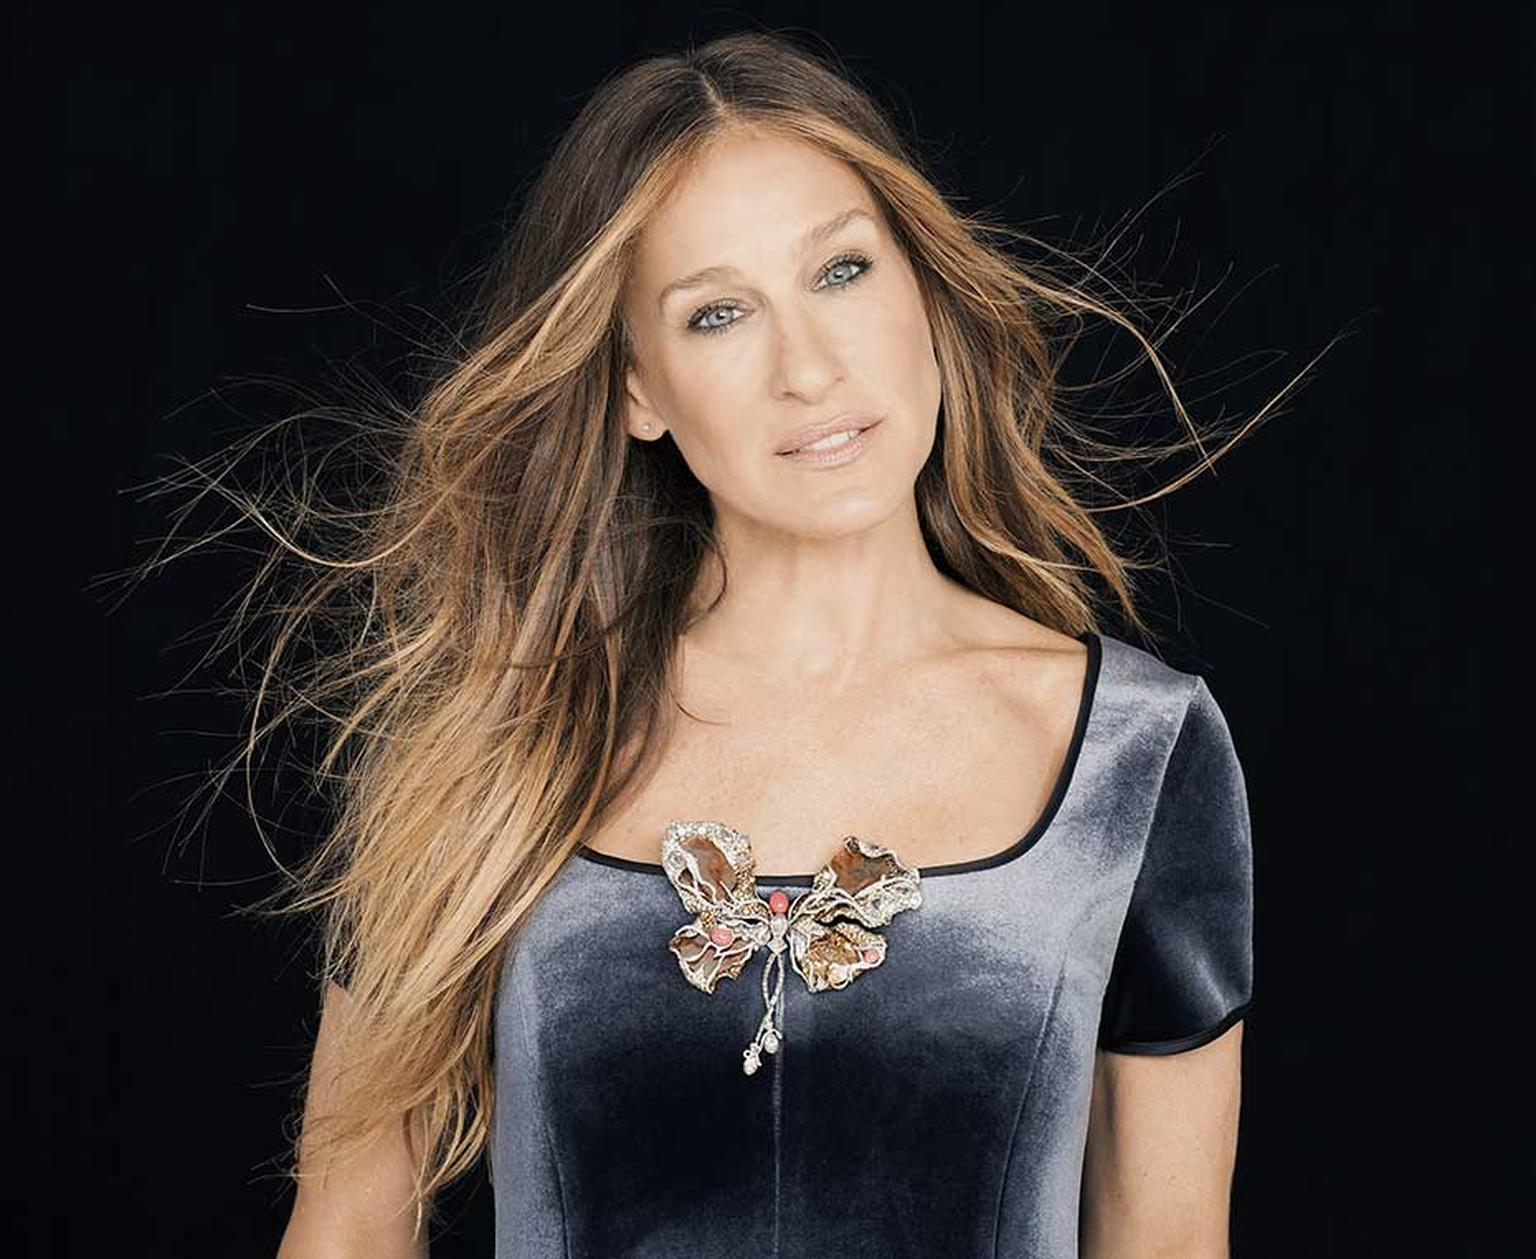 Actress Sarah Jessica Parker co-designed this magnificent Black Label Masterpiece Ballerina Butterfly brooch with Taiwanese jeweller Cindy Chao. It is set to be auctioned this autumn at Sotheby's in Hong Kong, with the proceeds going to the New York City